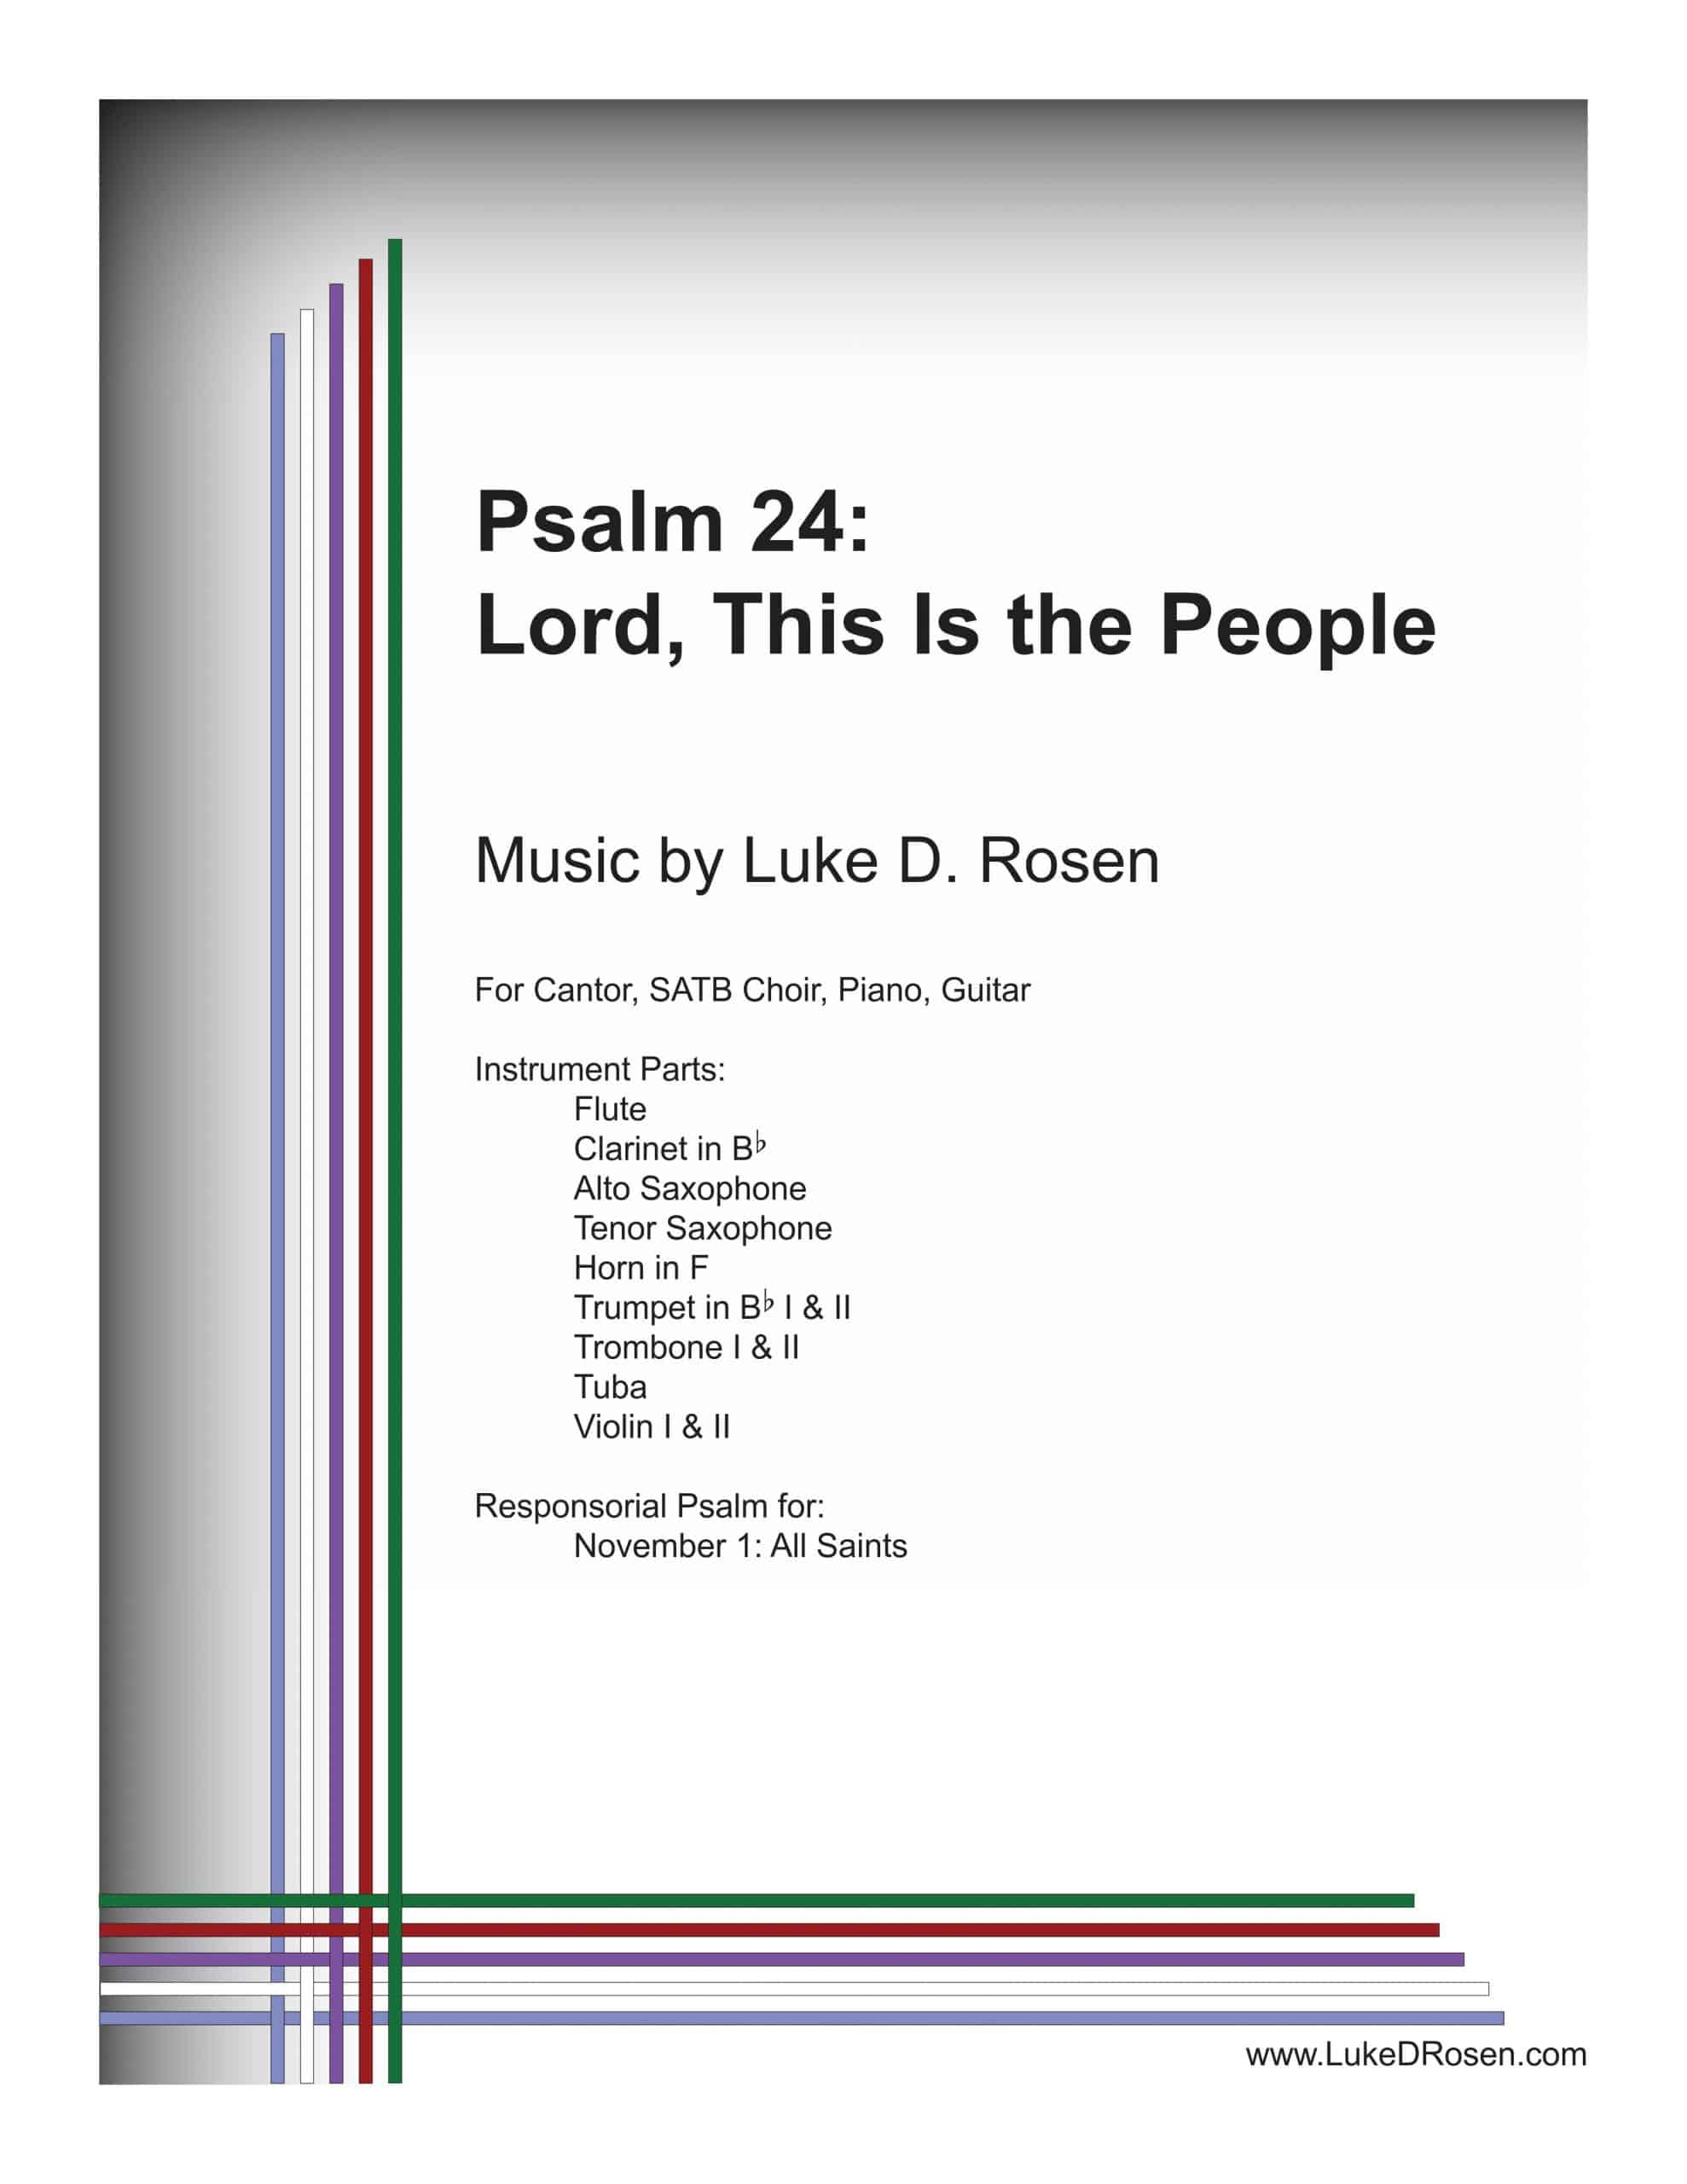 Psalm 24 Lord This Is the People ROSEN Sample Complete PDF scaled